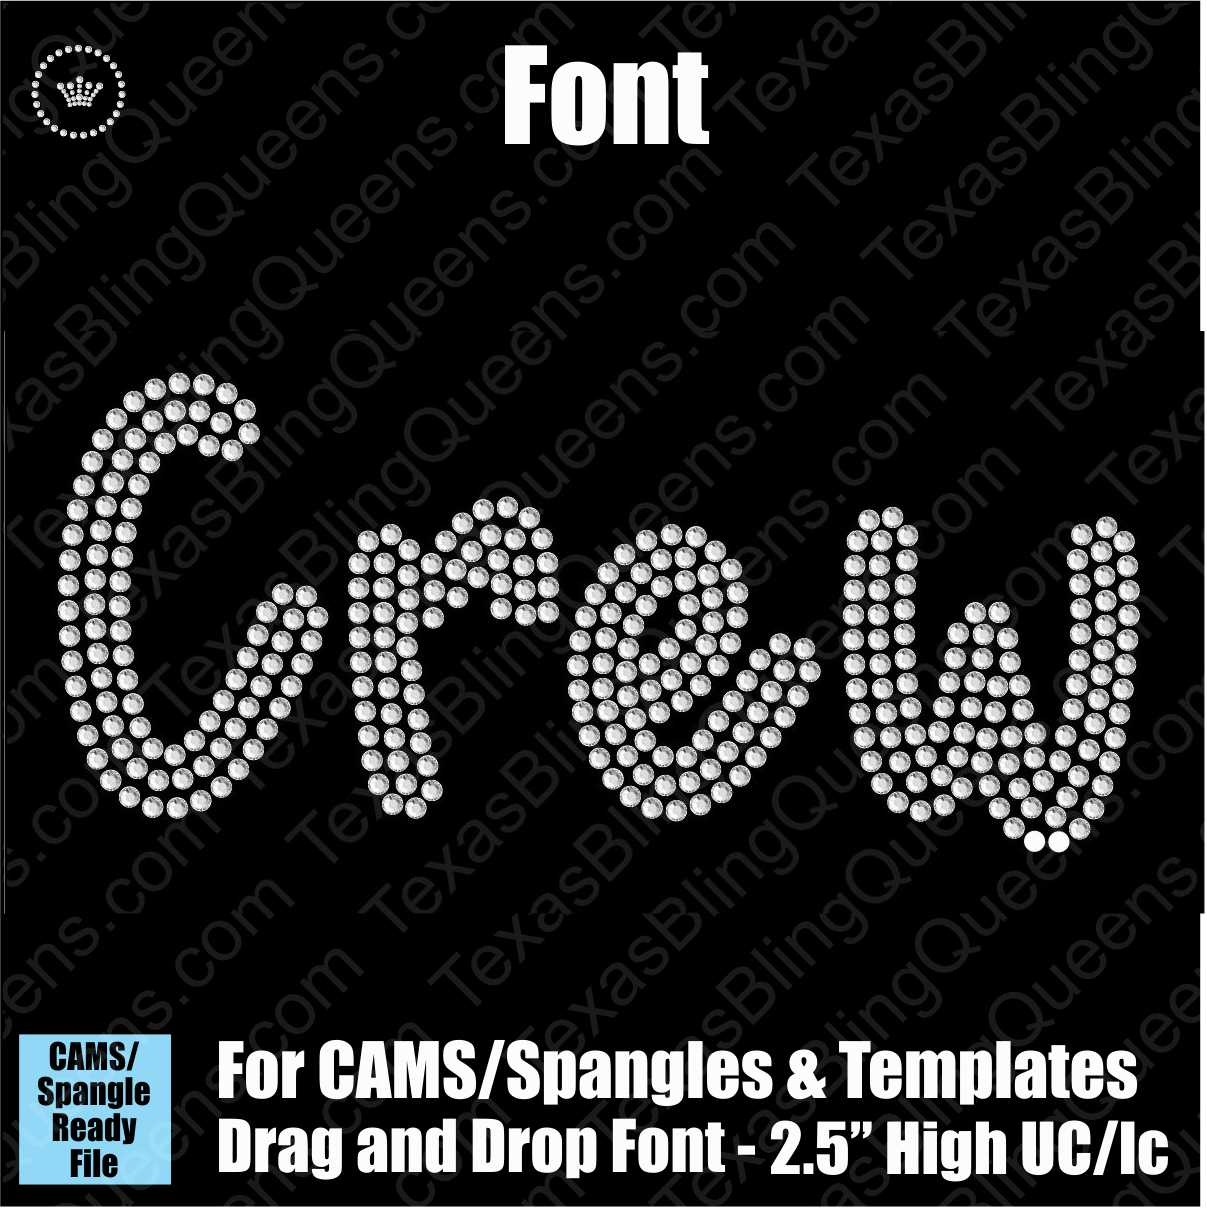 "Crew 2.5"" FONT Alphabet Download File - CAMS/ProSpangle or Templates"